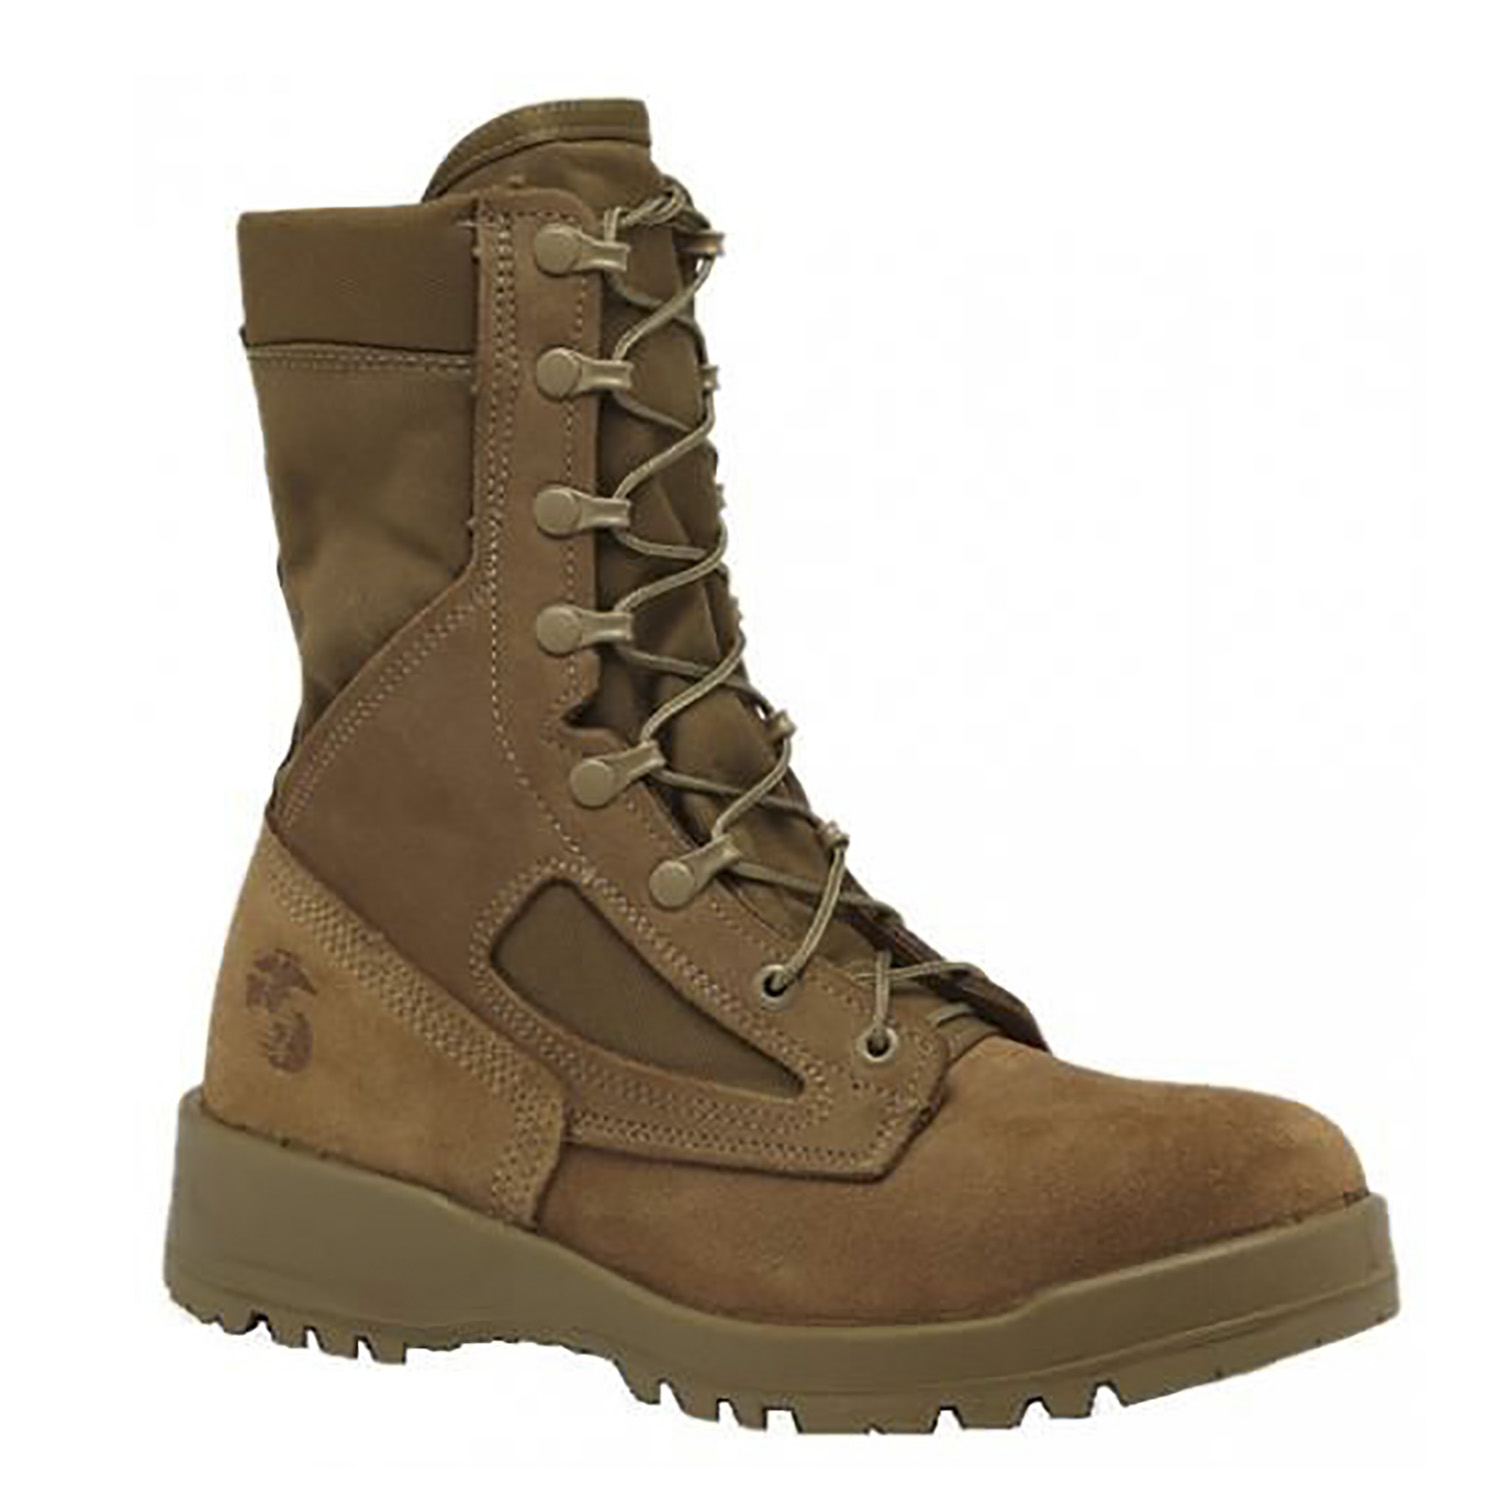 USMC Hot Weather Steel Toe Boot (EGA)